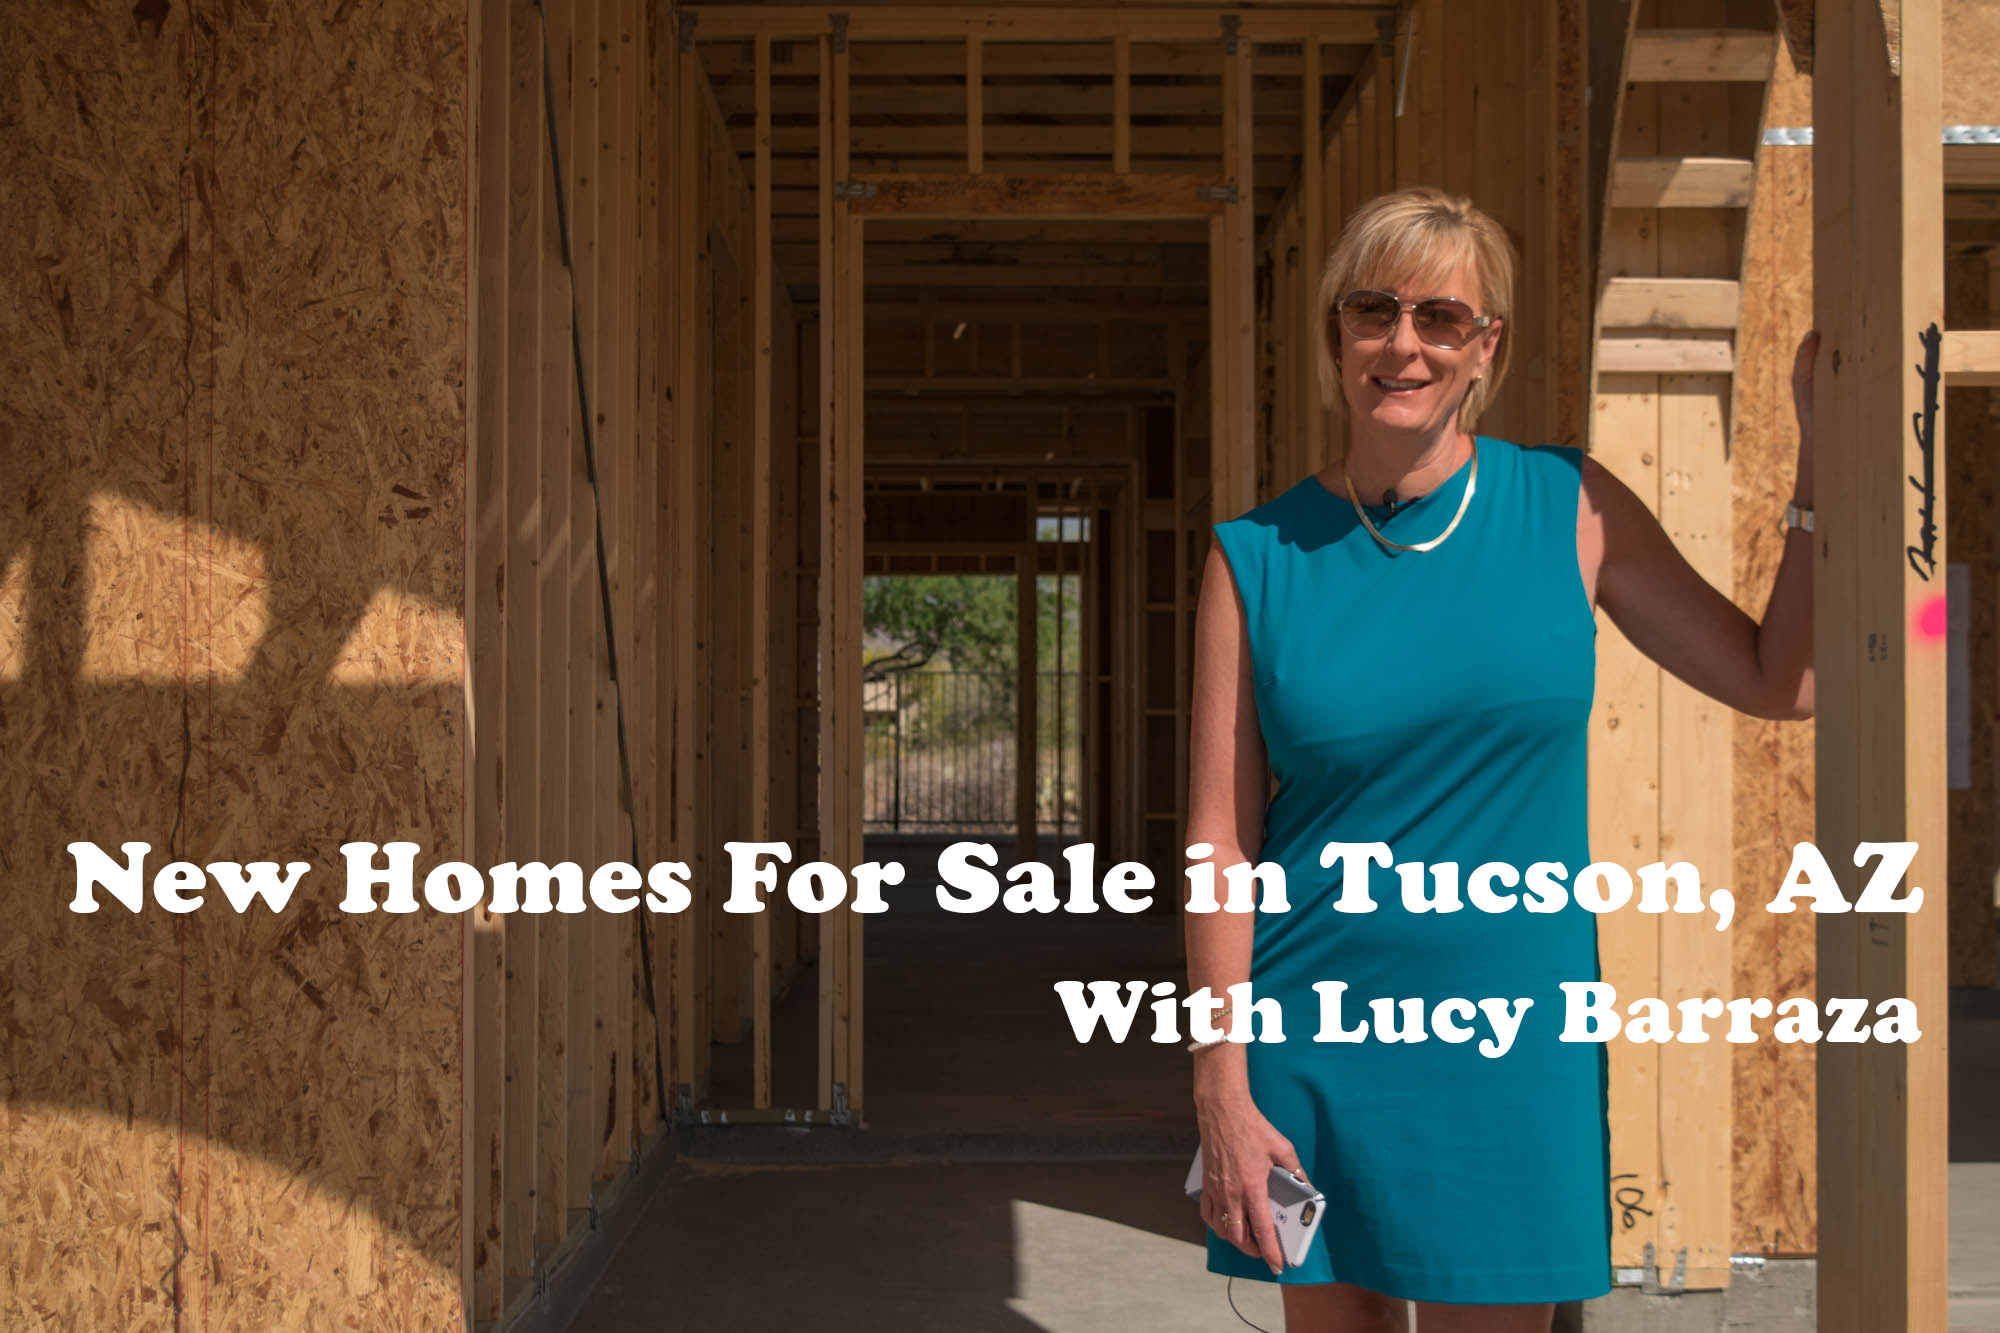 New Construction Homes for Sale in Tucson AZ